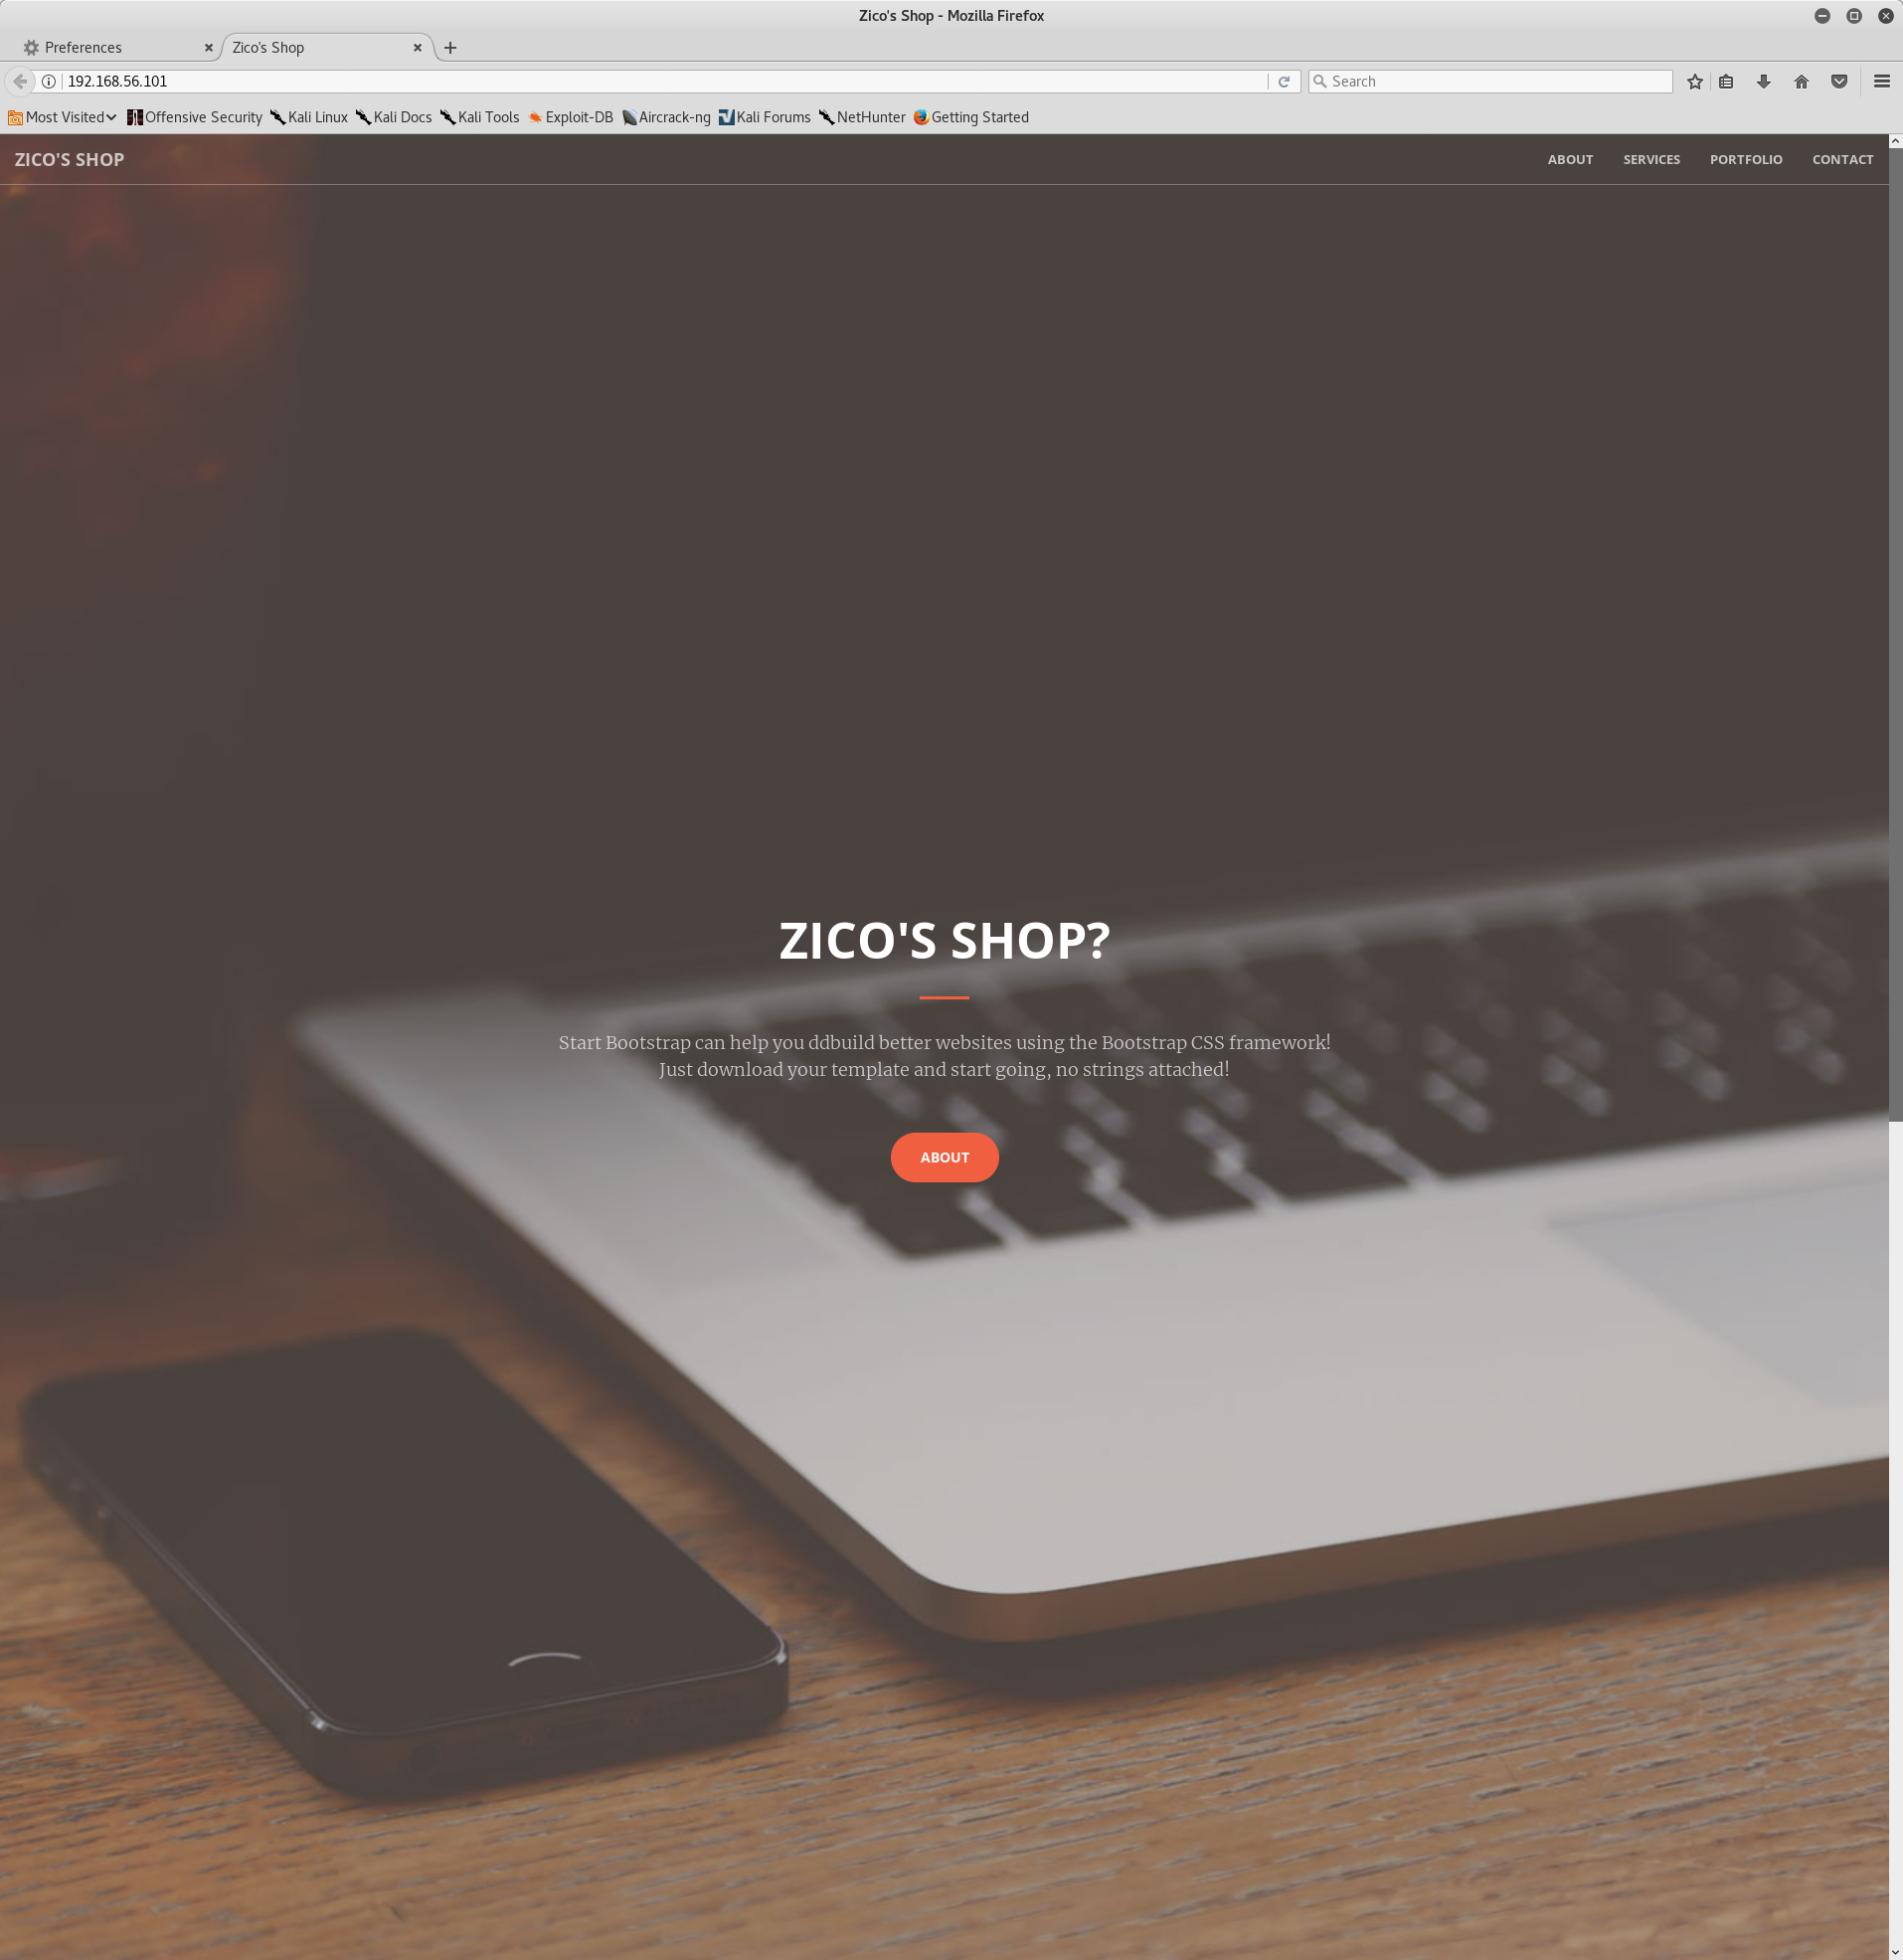 Zico2 Homepage on port 80